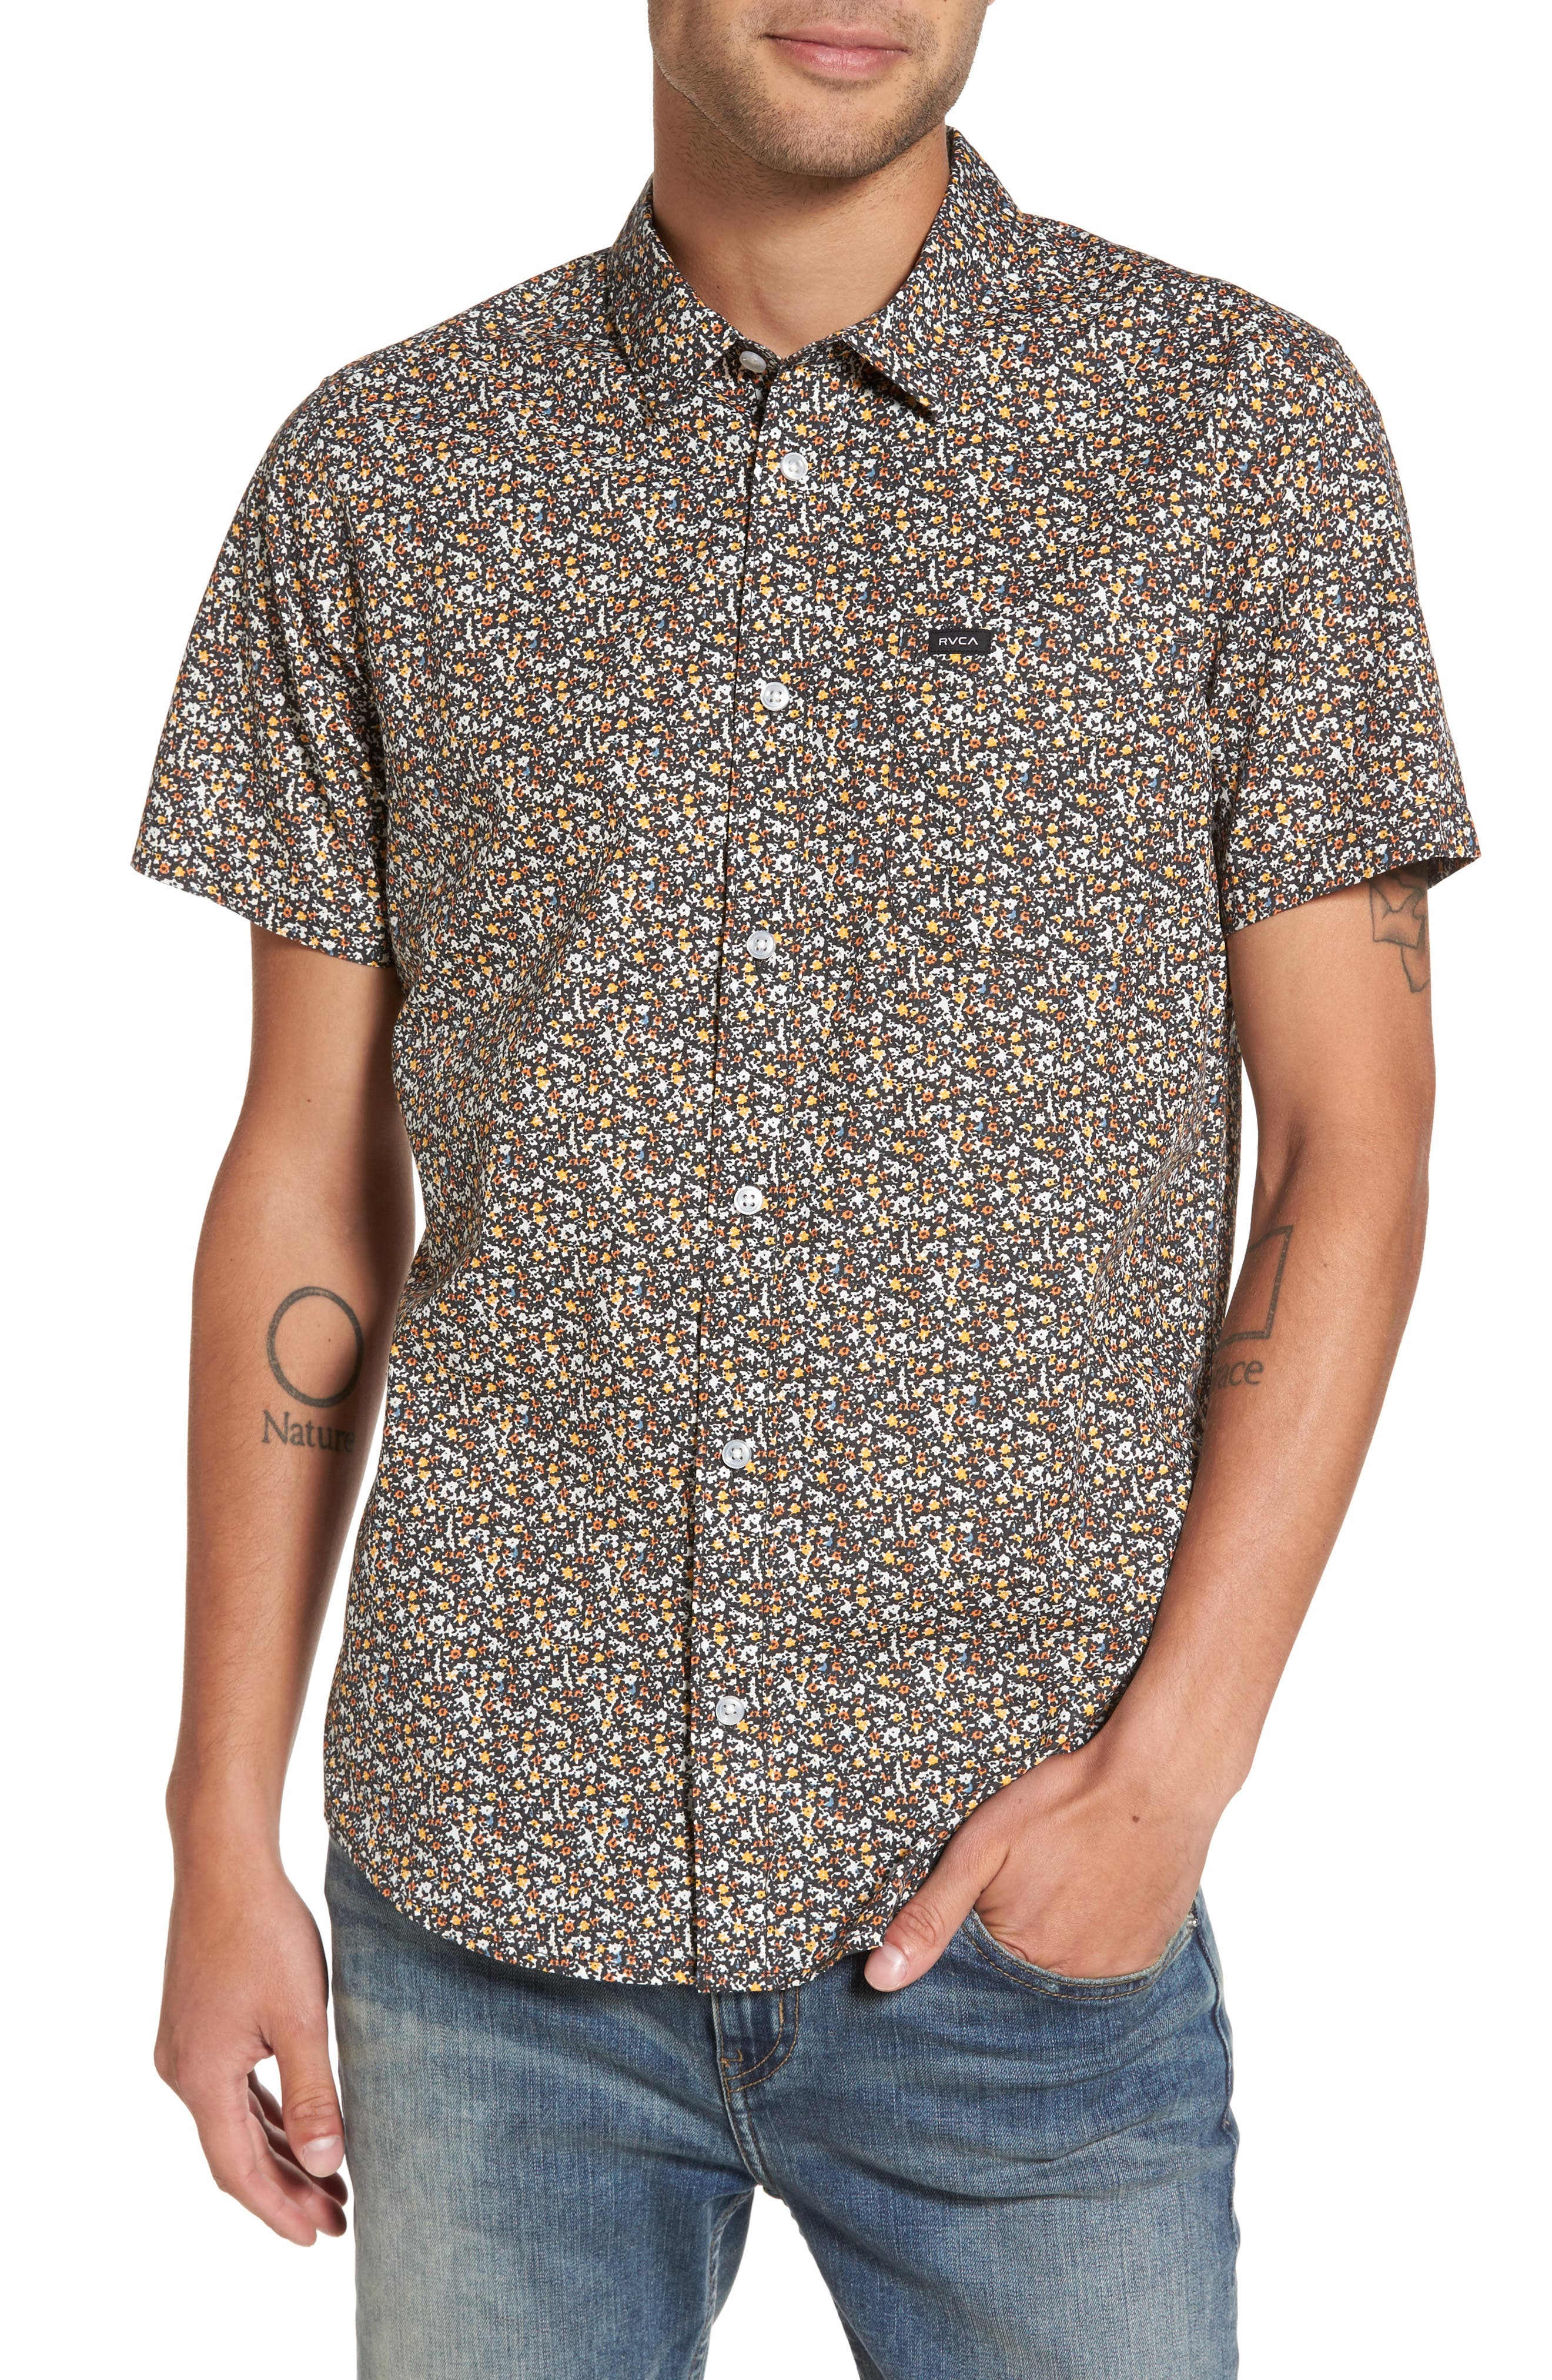 Alternate Image 1 Selected - RVCA Cluster Floral Print Woven Shirt